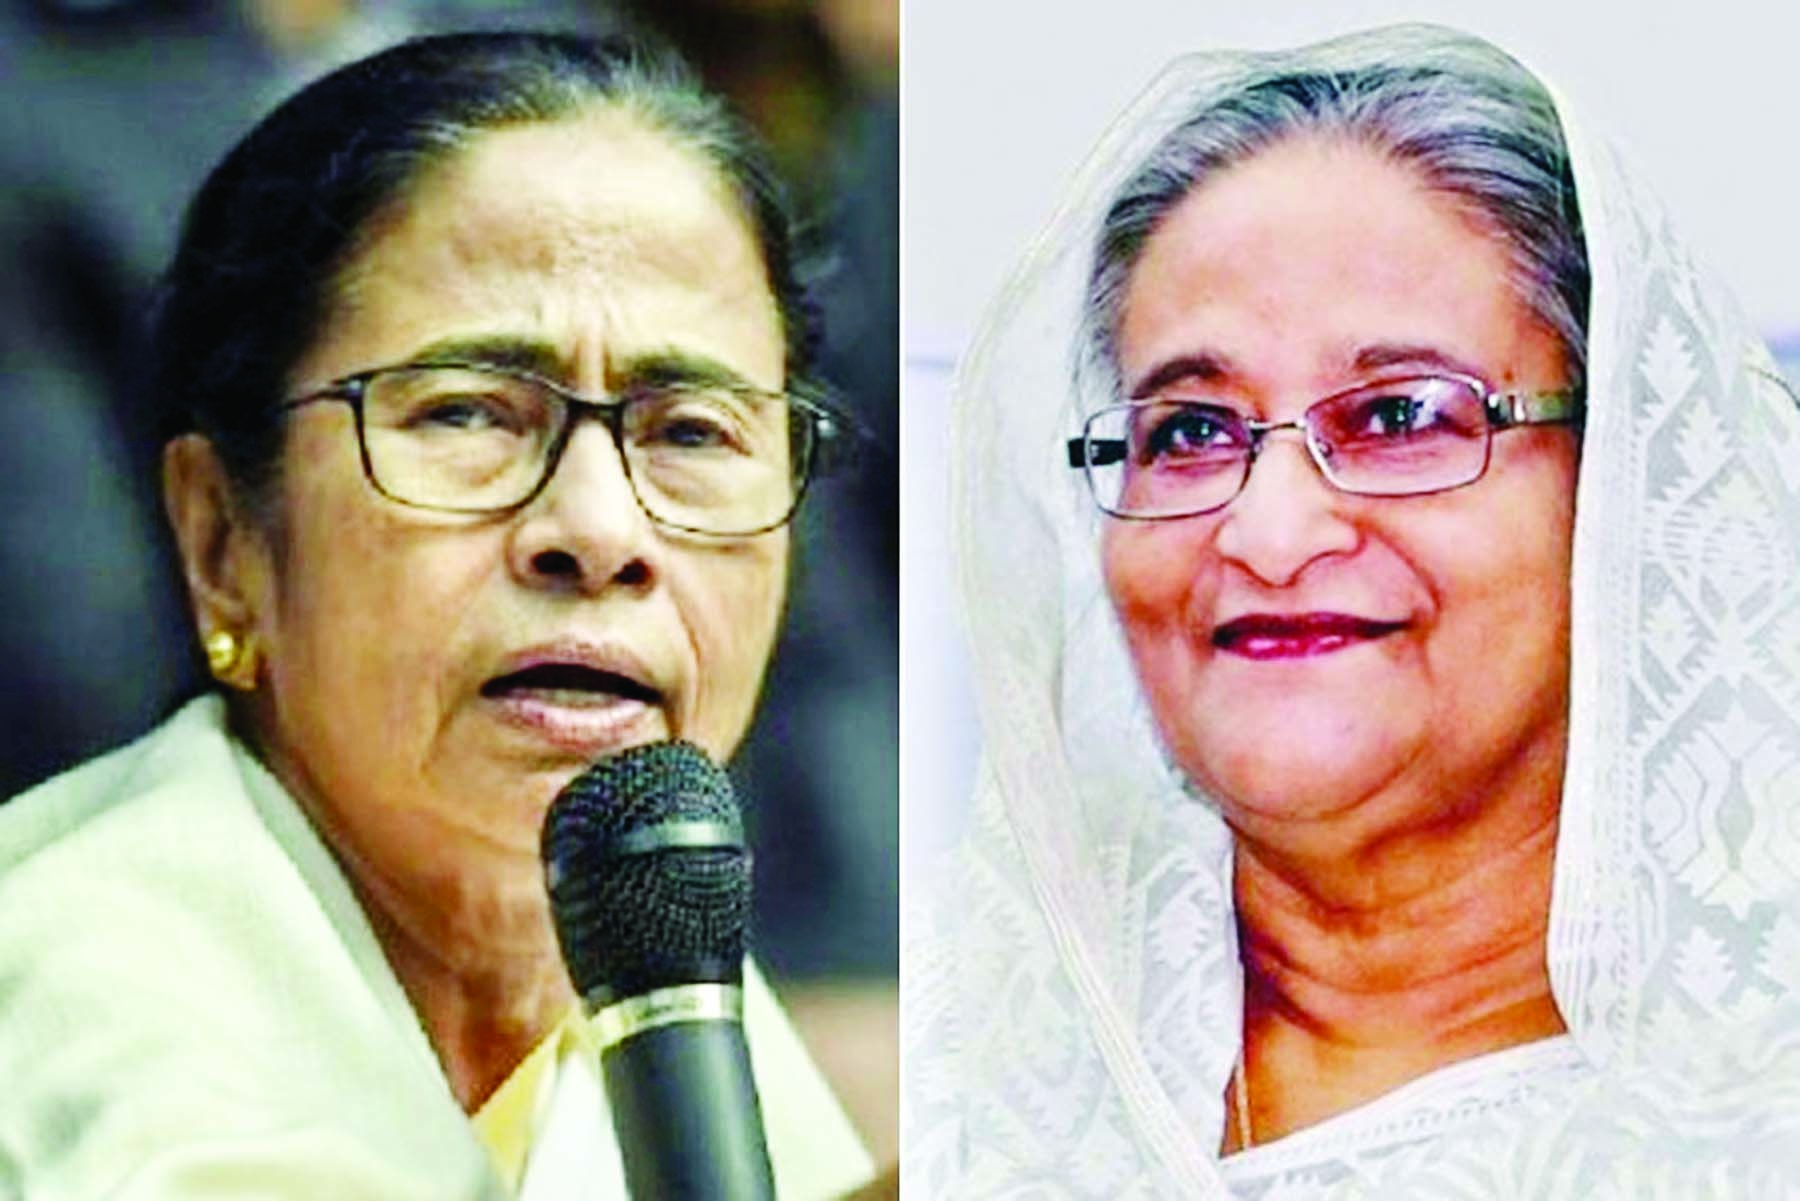 Will work together to overcome Covid-19 crisis: PM to Mamata